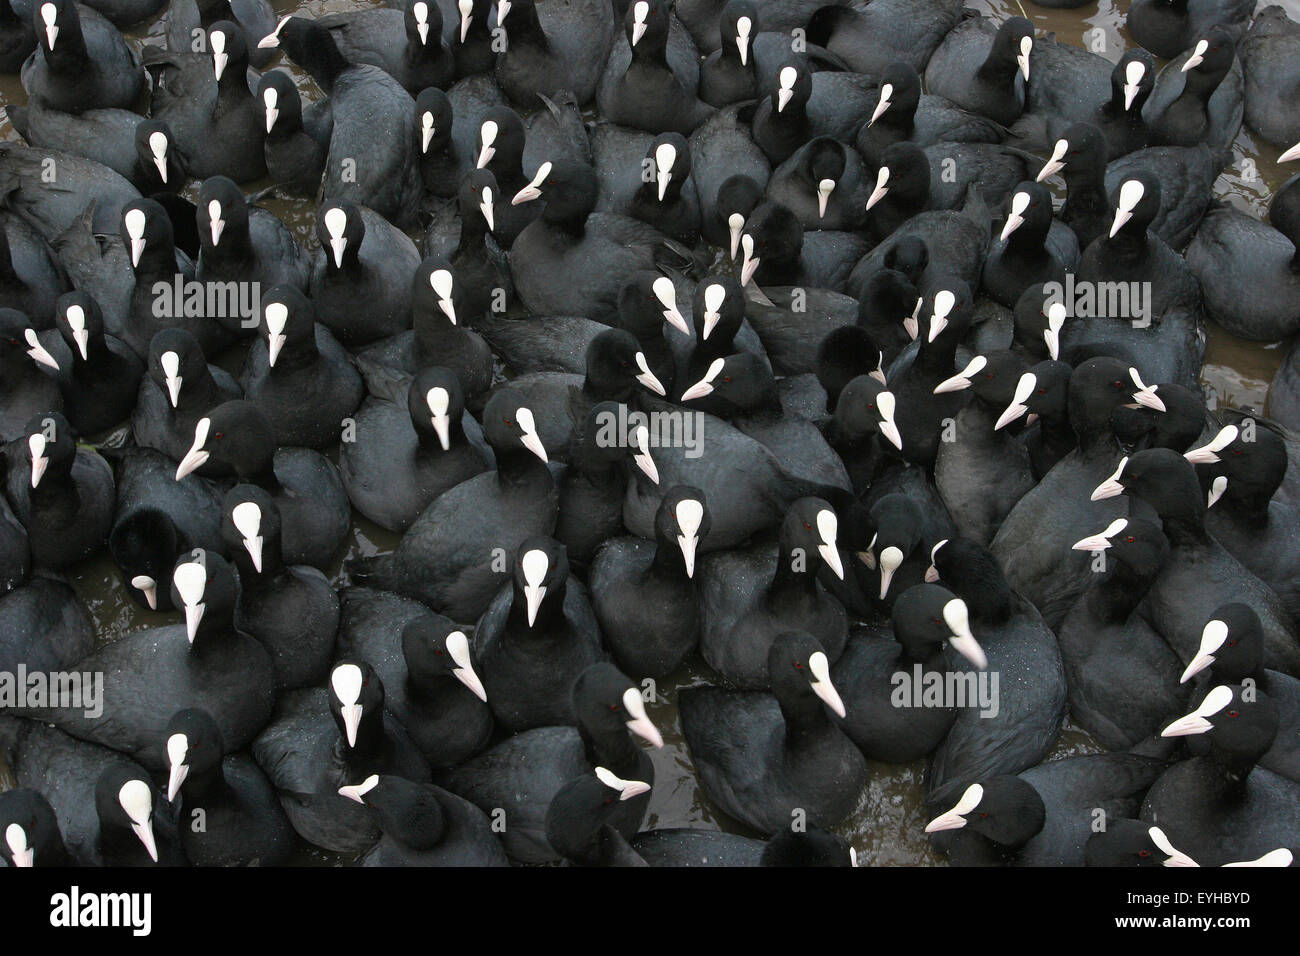 Eurasian Coots (Fulica atra) at a feeding site, Thuringia, Germany Stock Photo